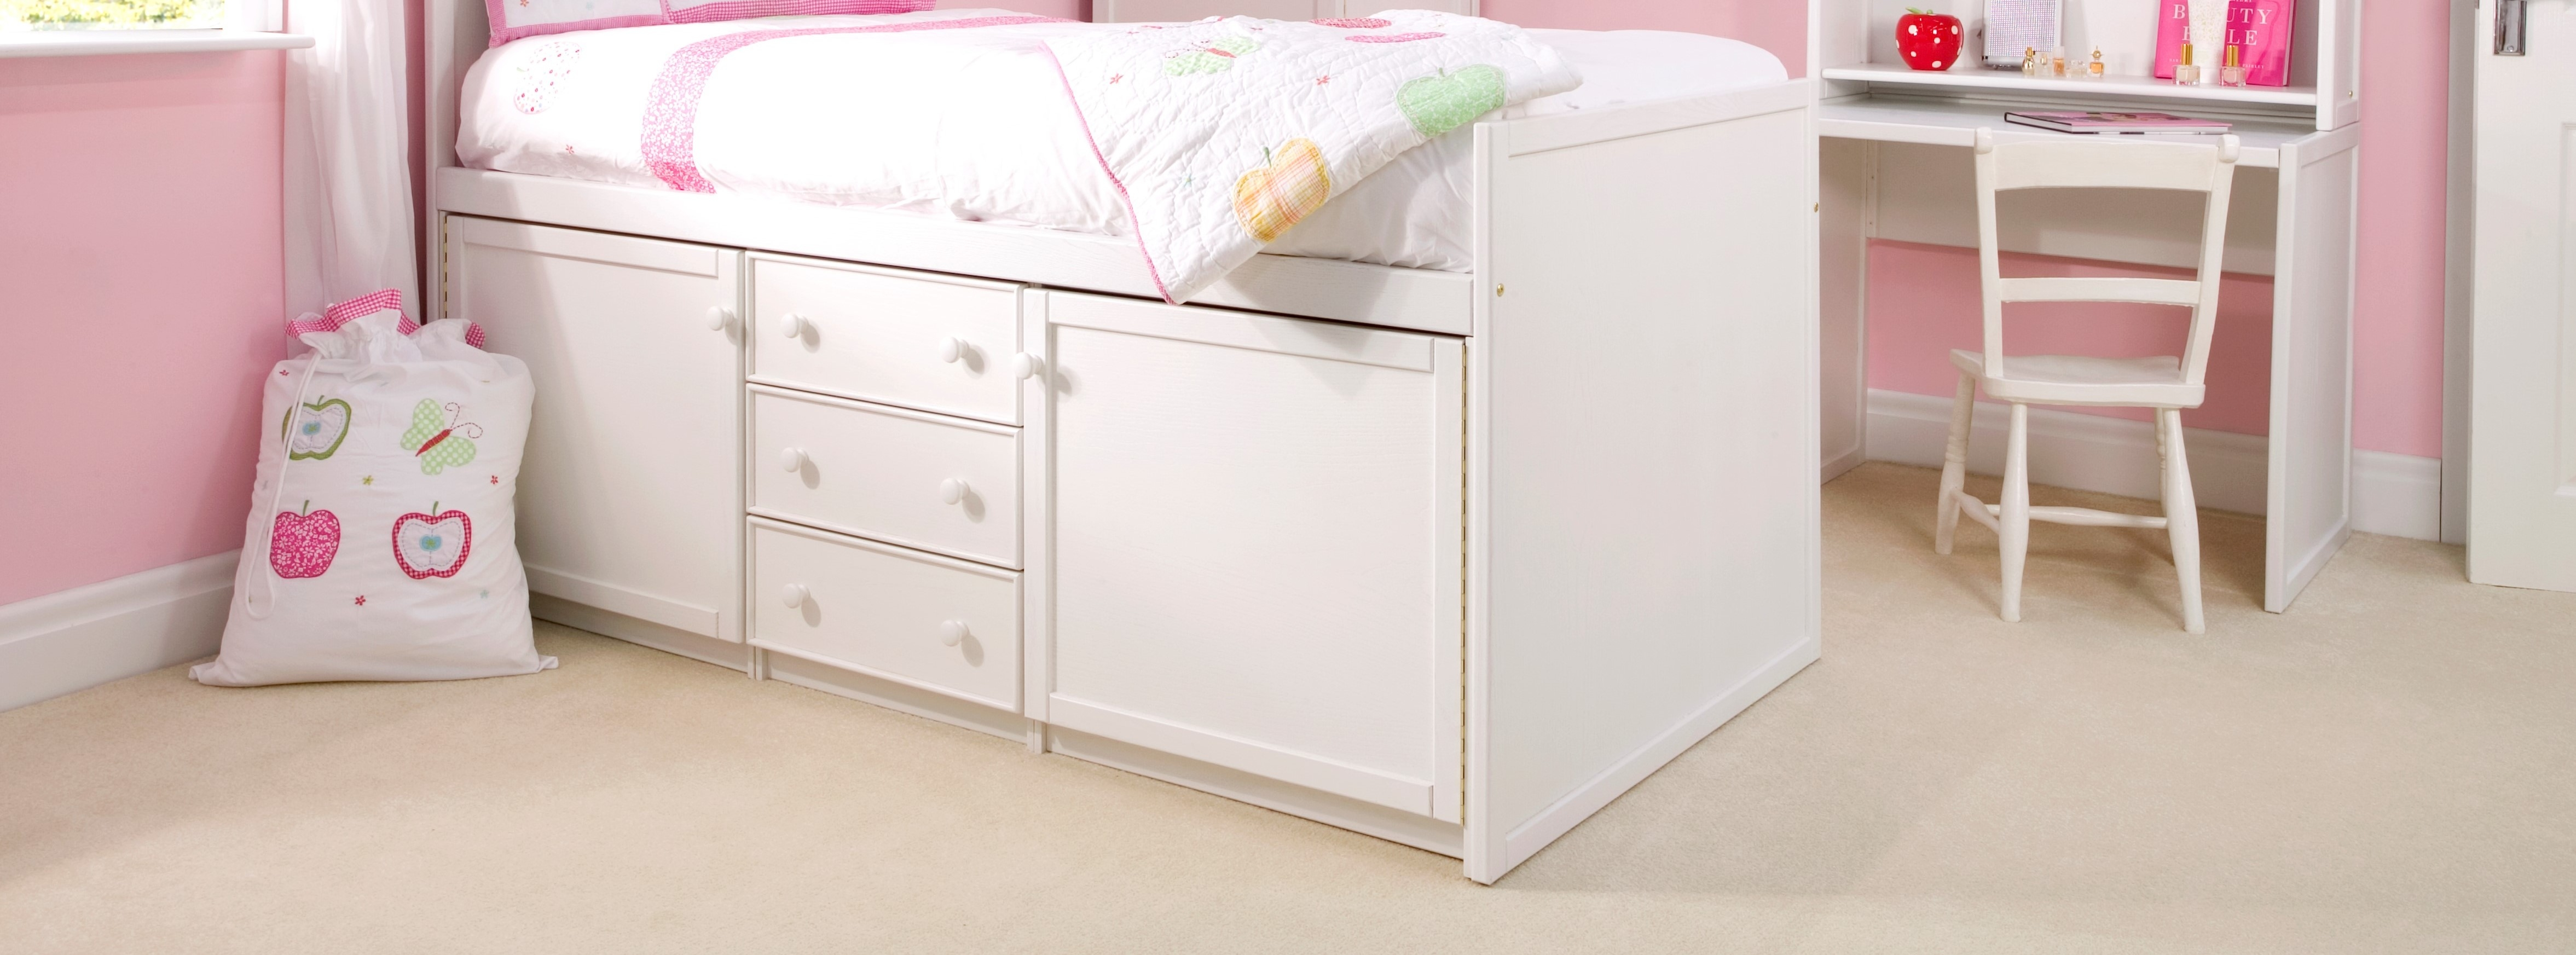 Picture of: Kids Beds Beds For Kids Childrens Bed Centres